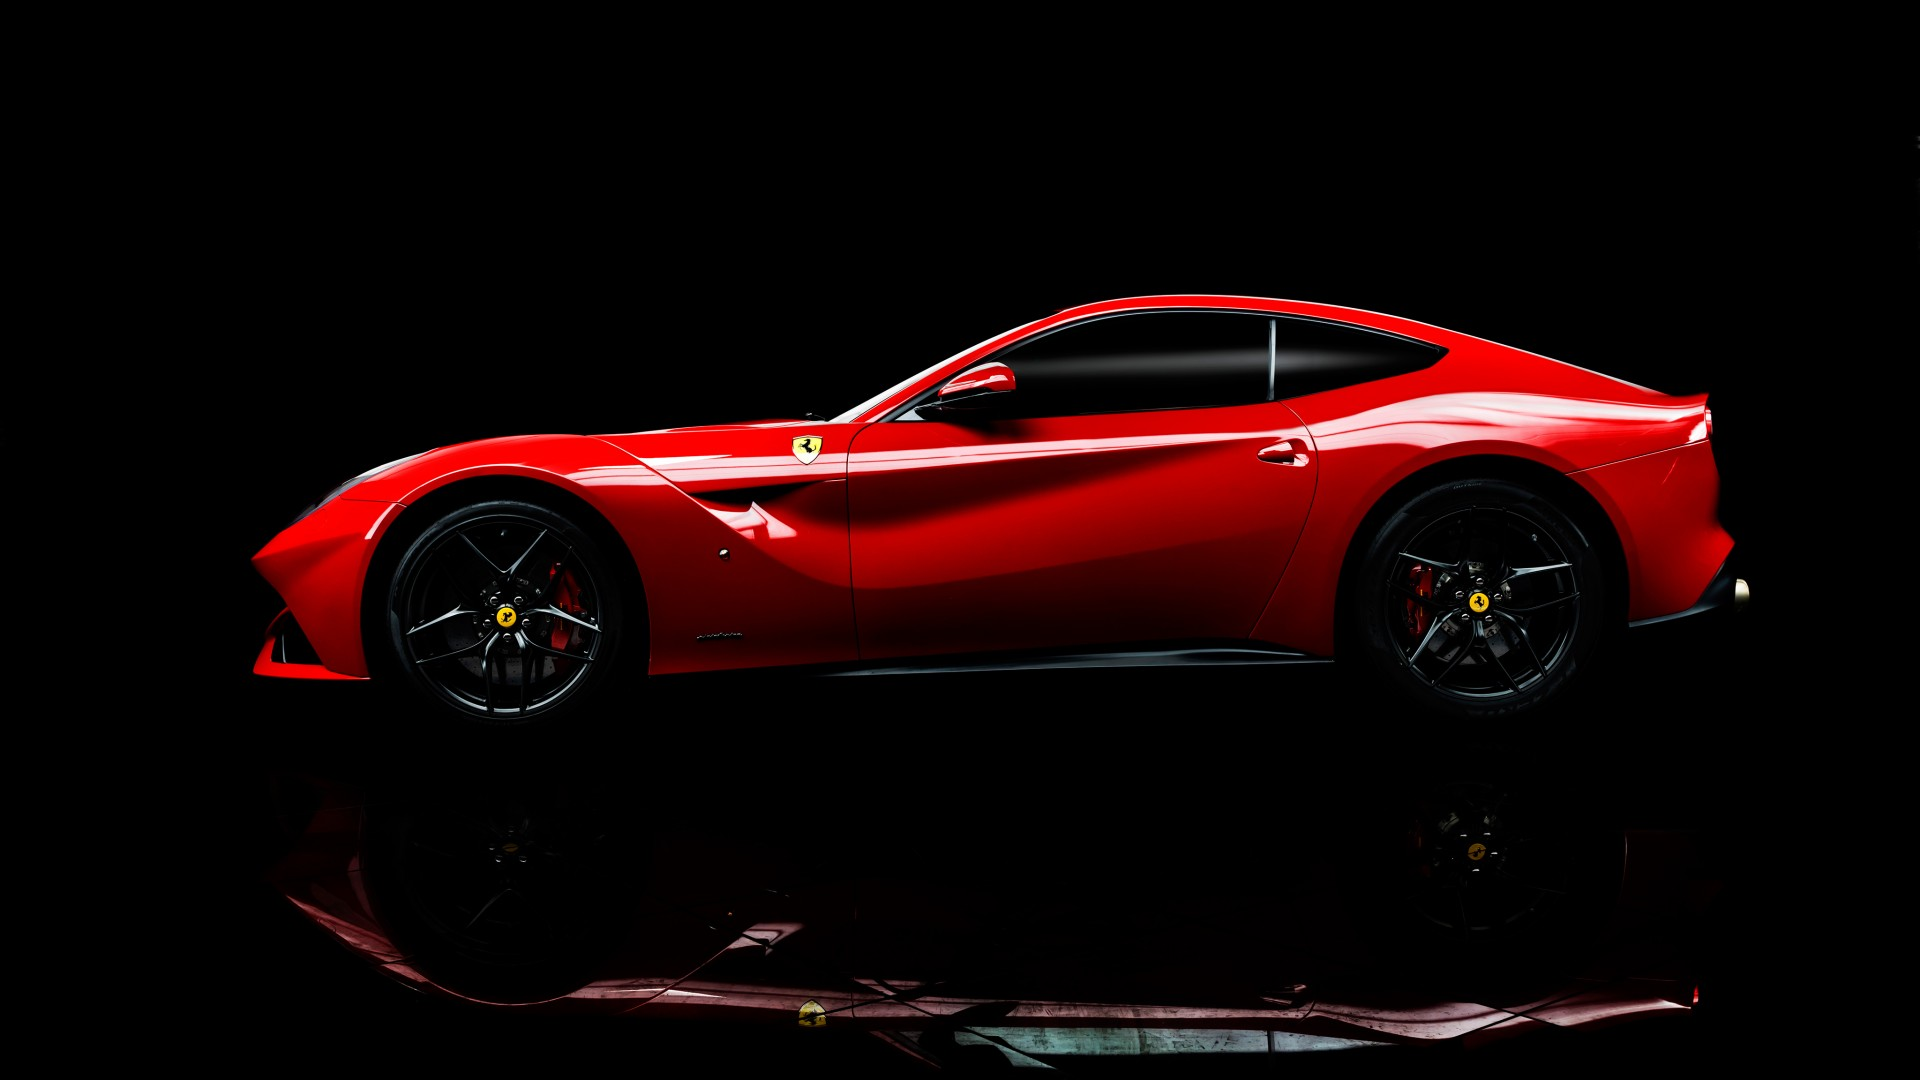 Ferrari F12berlinetta 4k Wallpaper Hd Car Wallpapers